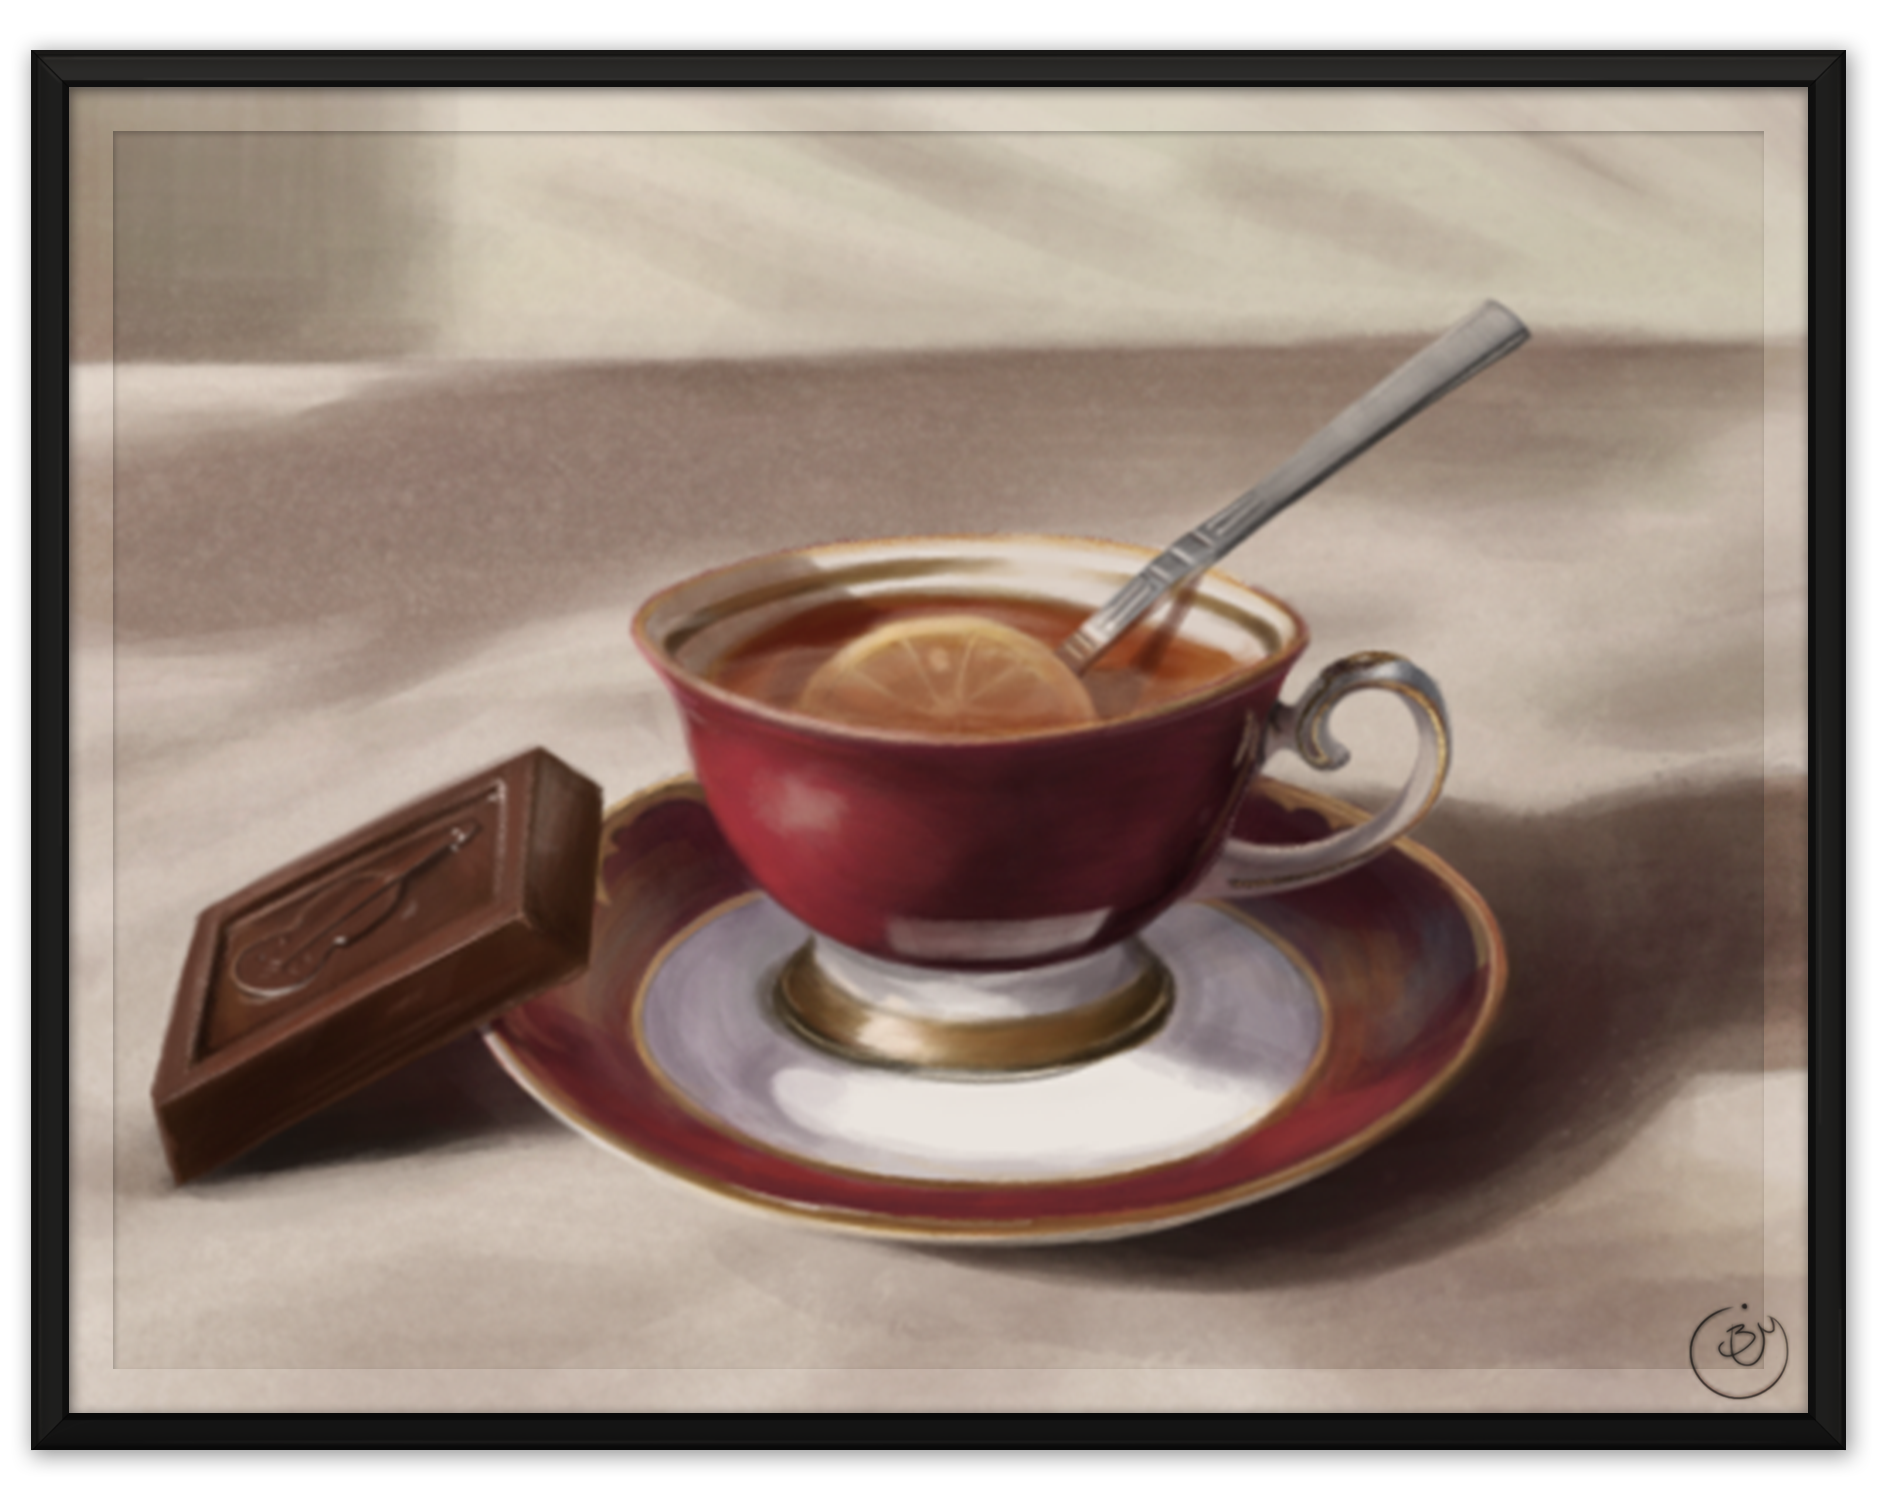 Tea Set (Digital, from reference)